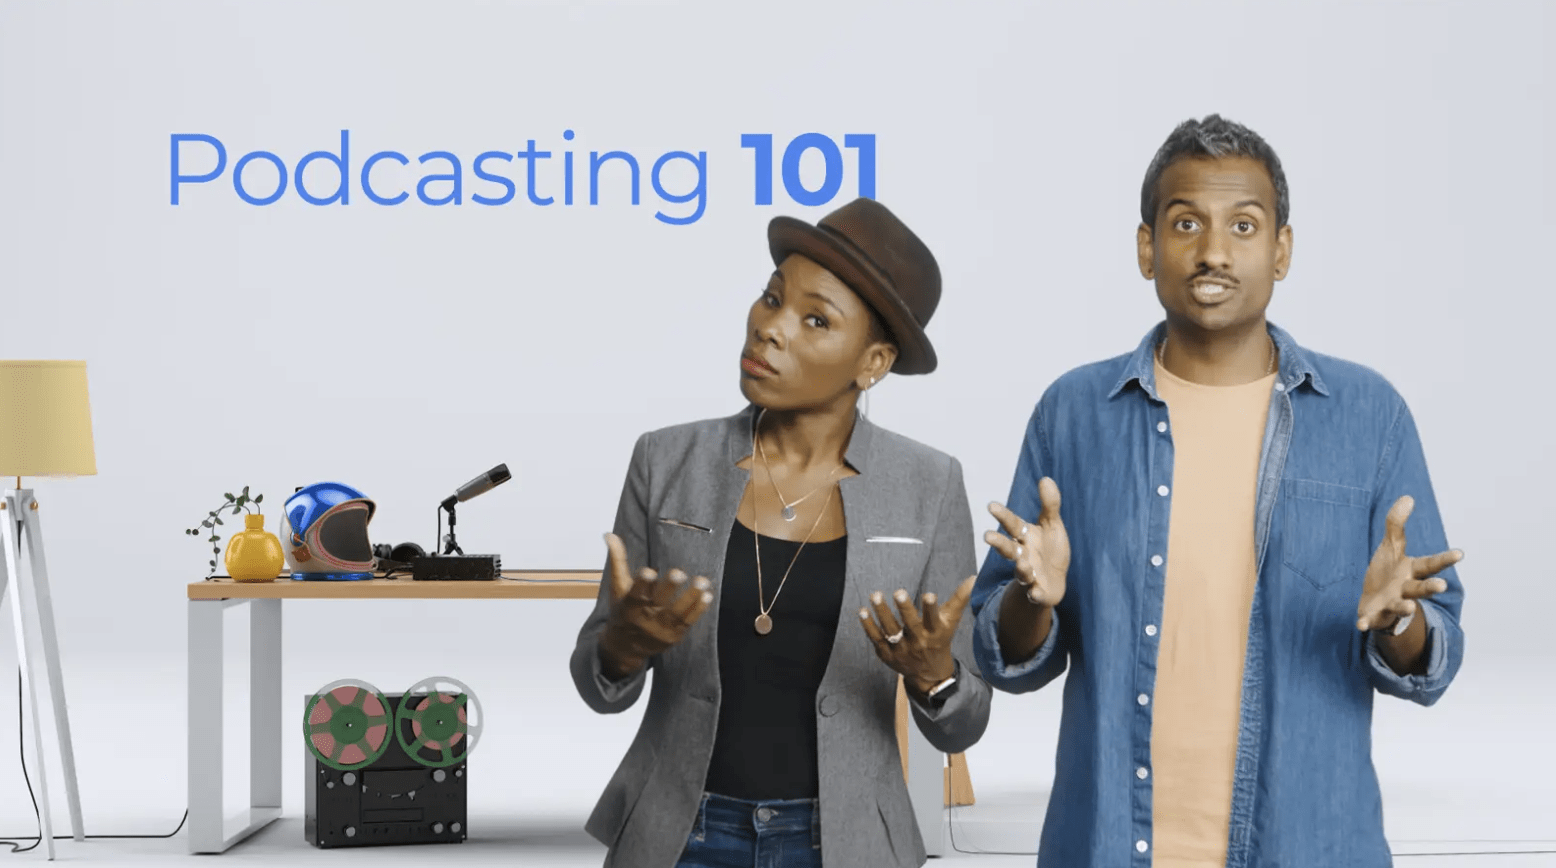 Podcasting 101 hero frame showing presenters talking